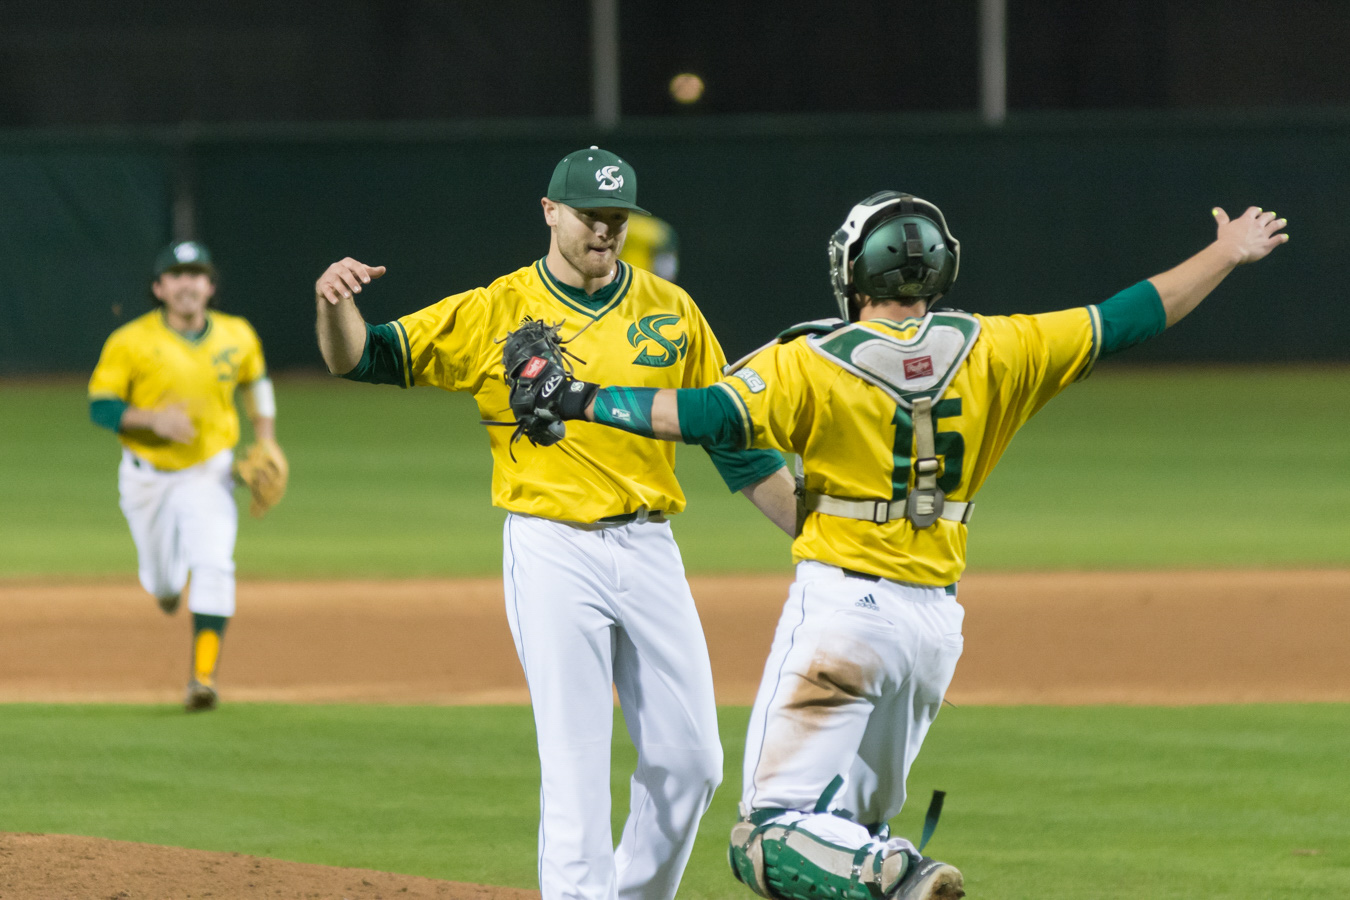 Sacramento State right-handed senior pitcher Justin Dillon celebrates with freshman catcher Dawsen Bacho after throwing a no-hitter against Northern Kentucky at John Smith Field on Feb. 23. (Photo by Matthew Dyer)